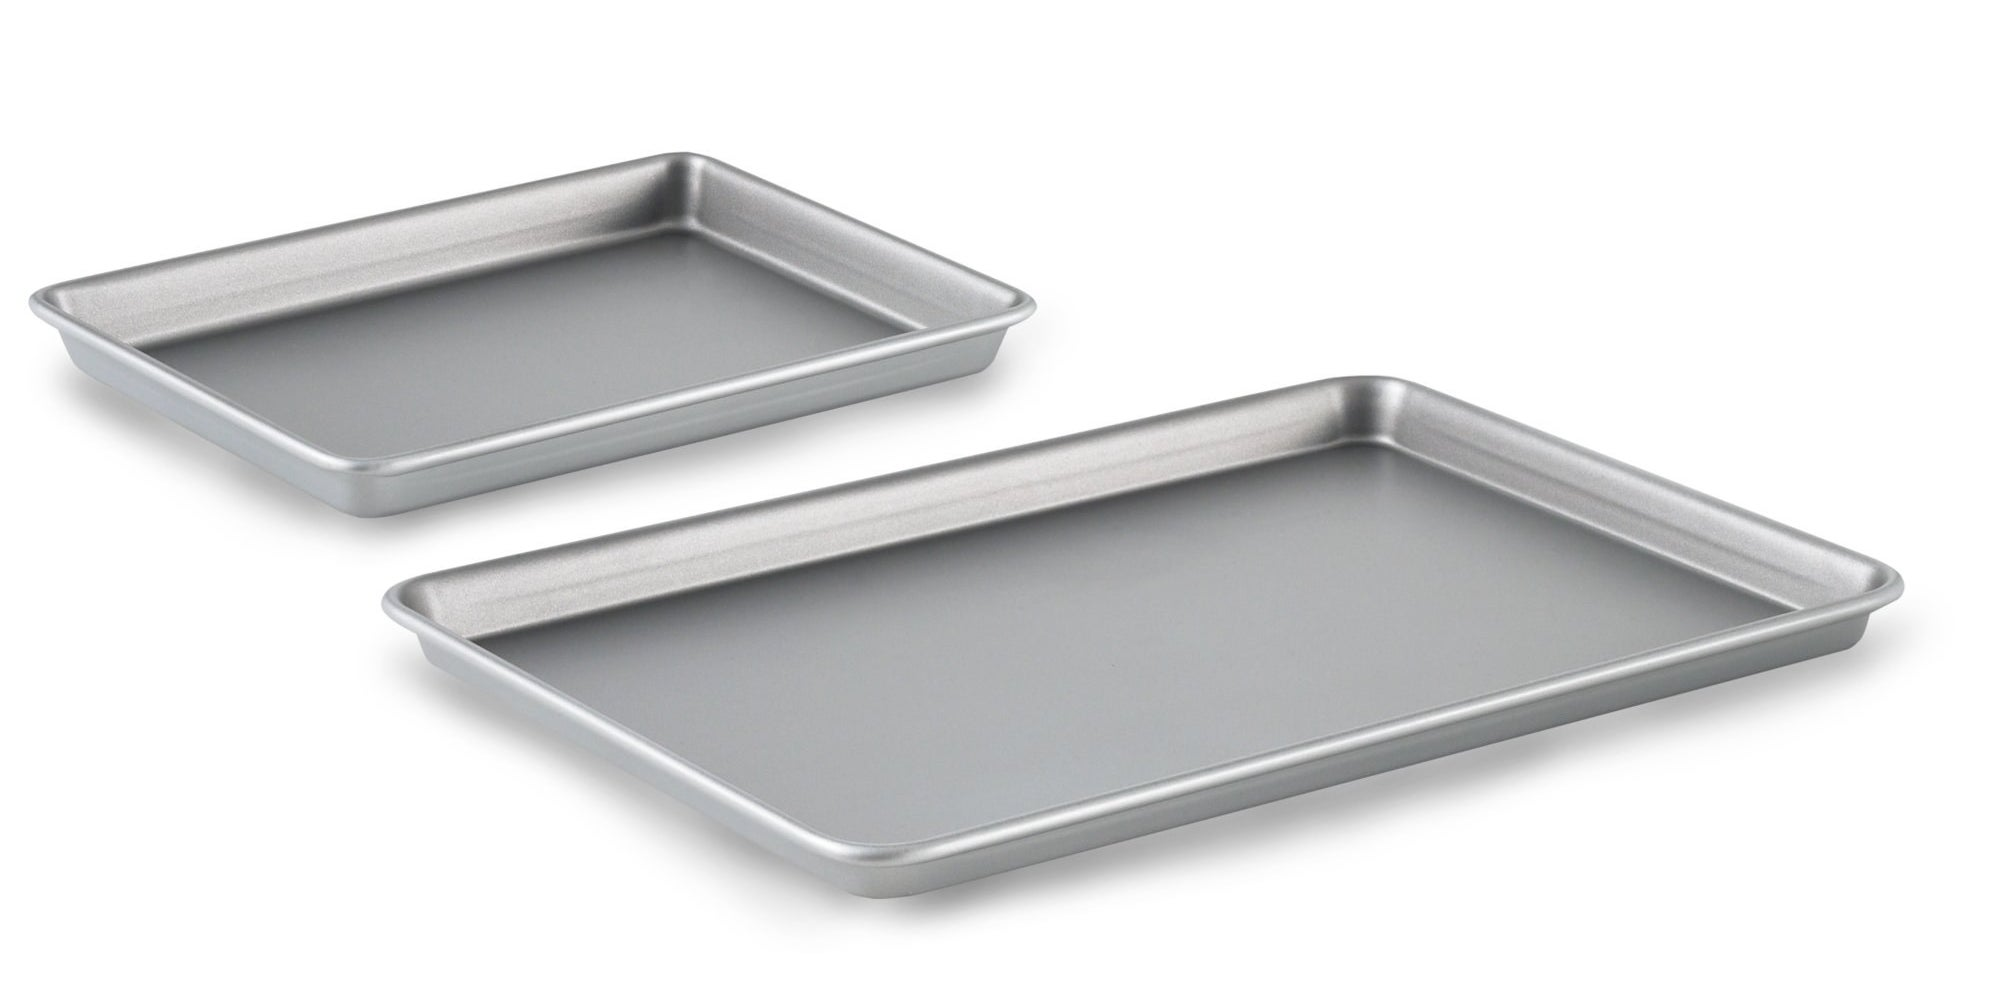 Stainless brownie pan and cookie sheet side by side